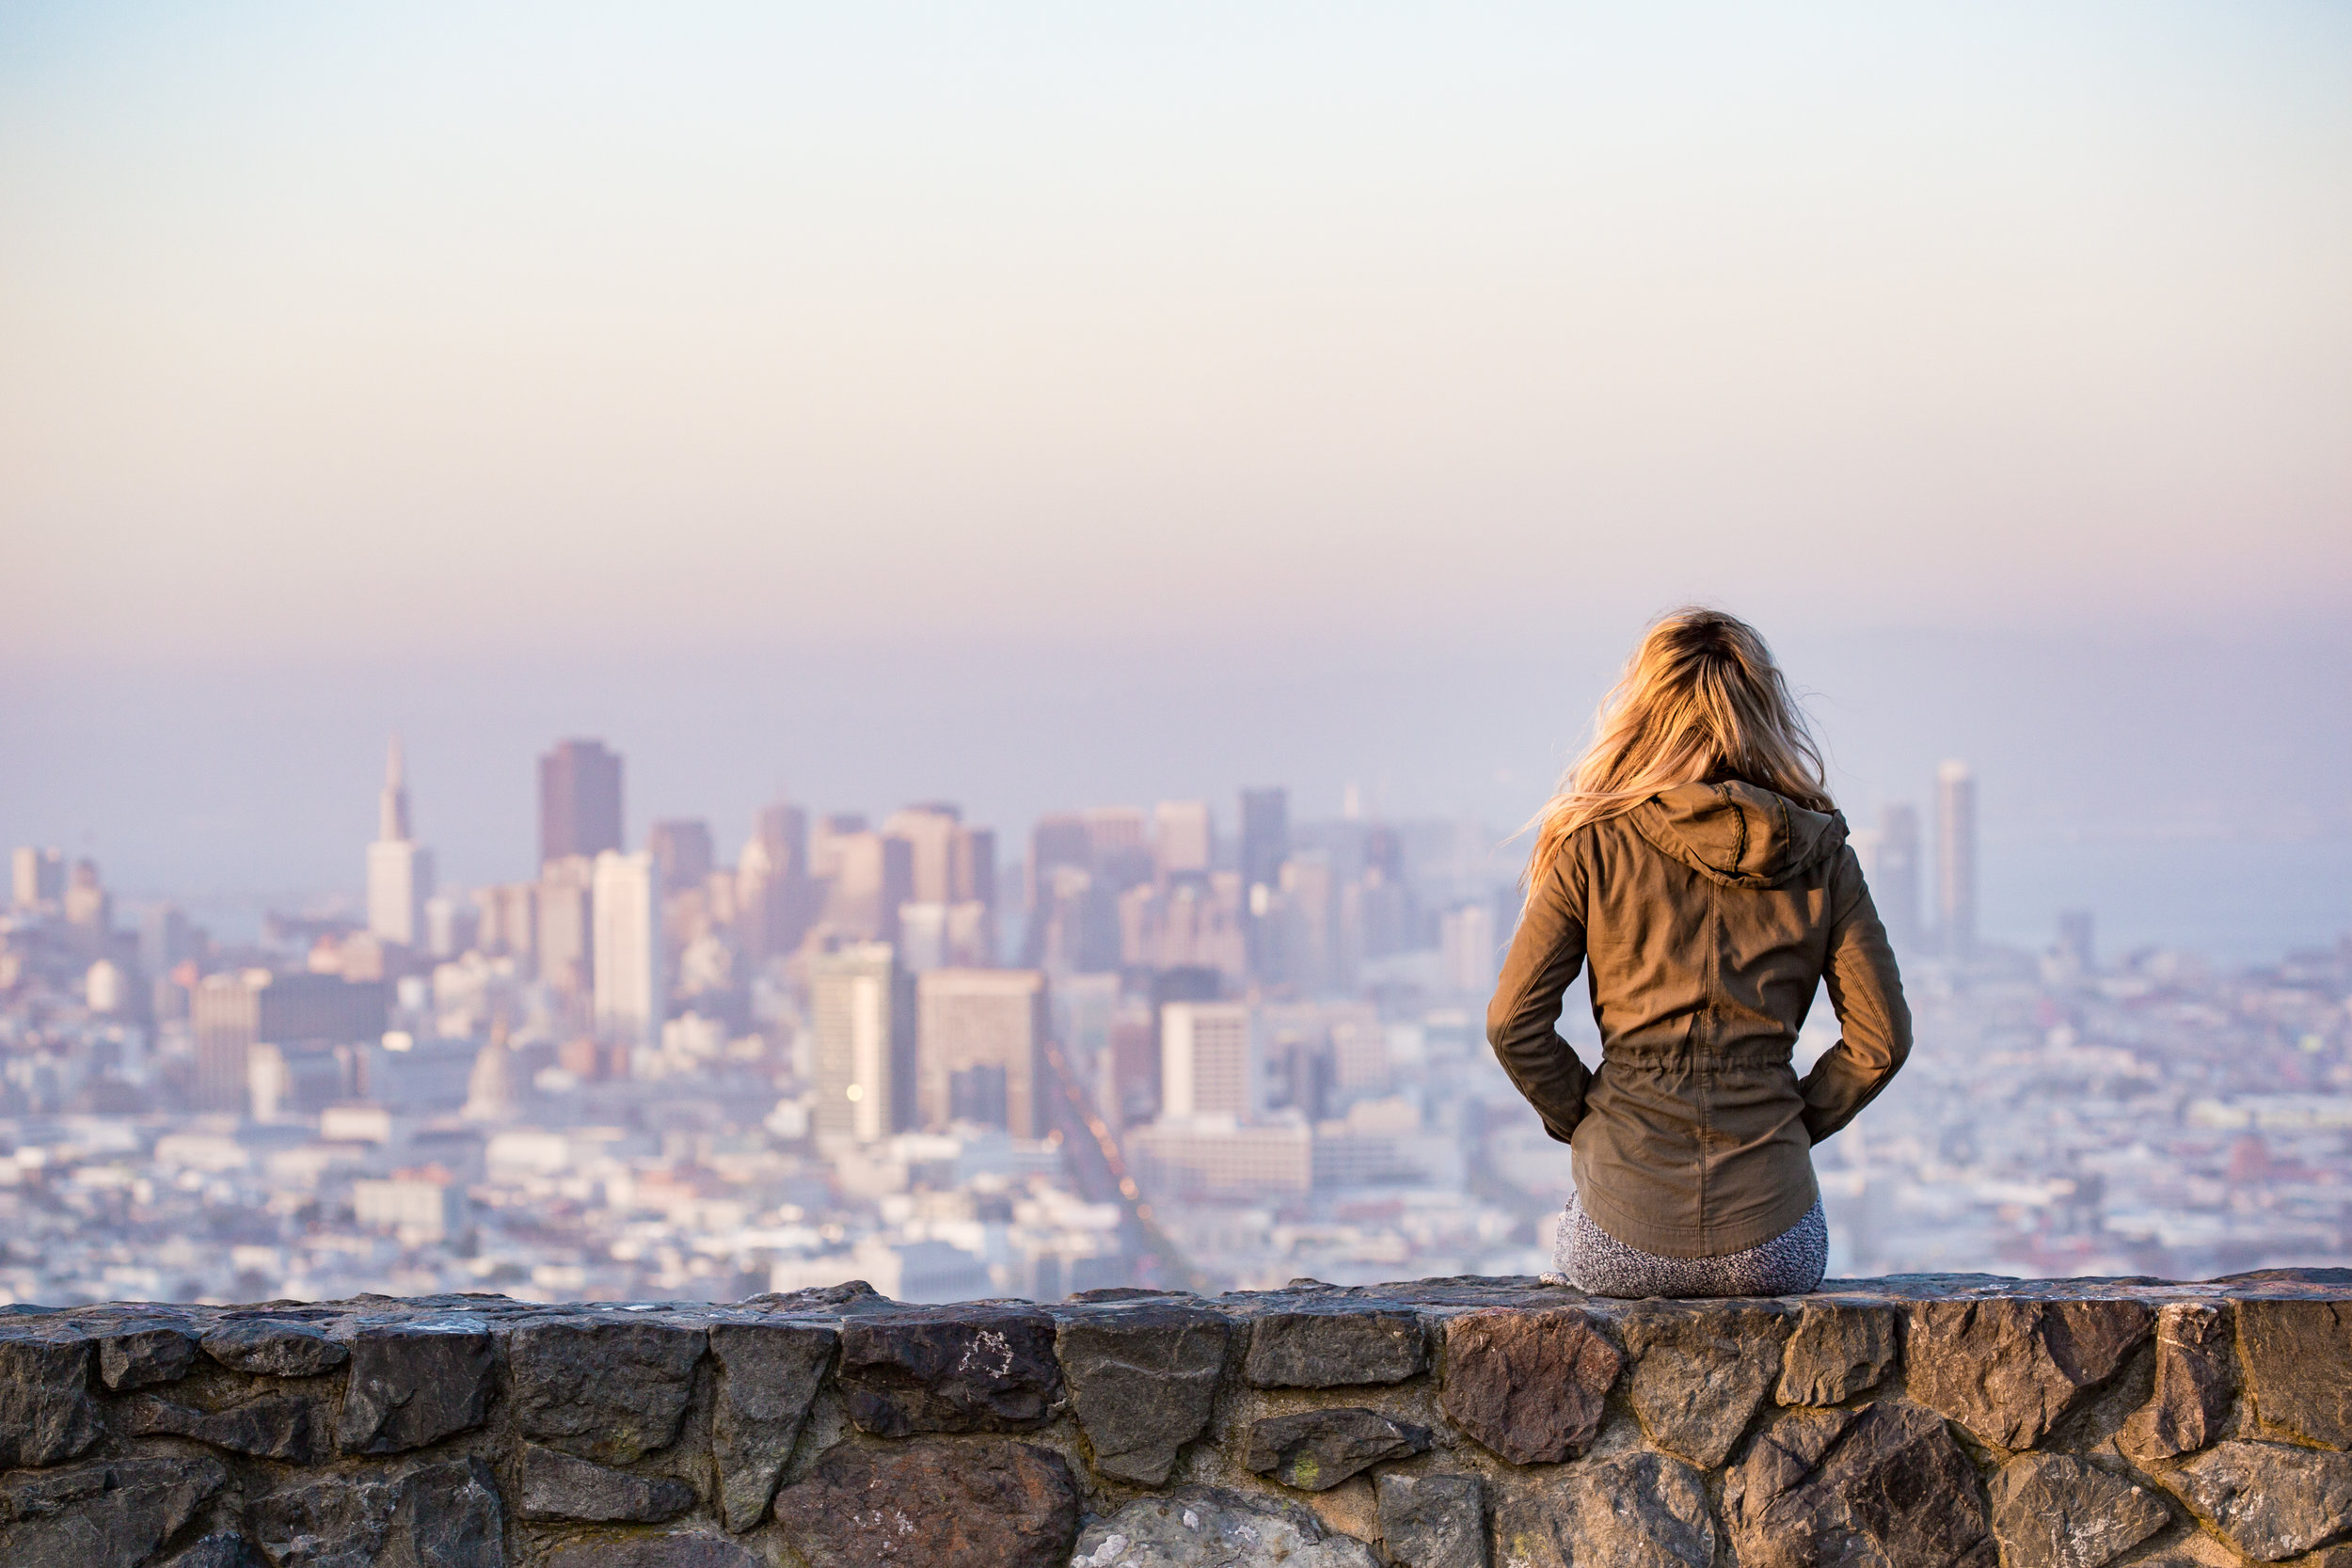 Girl looks out onto a cityscape